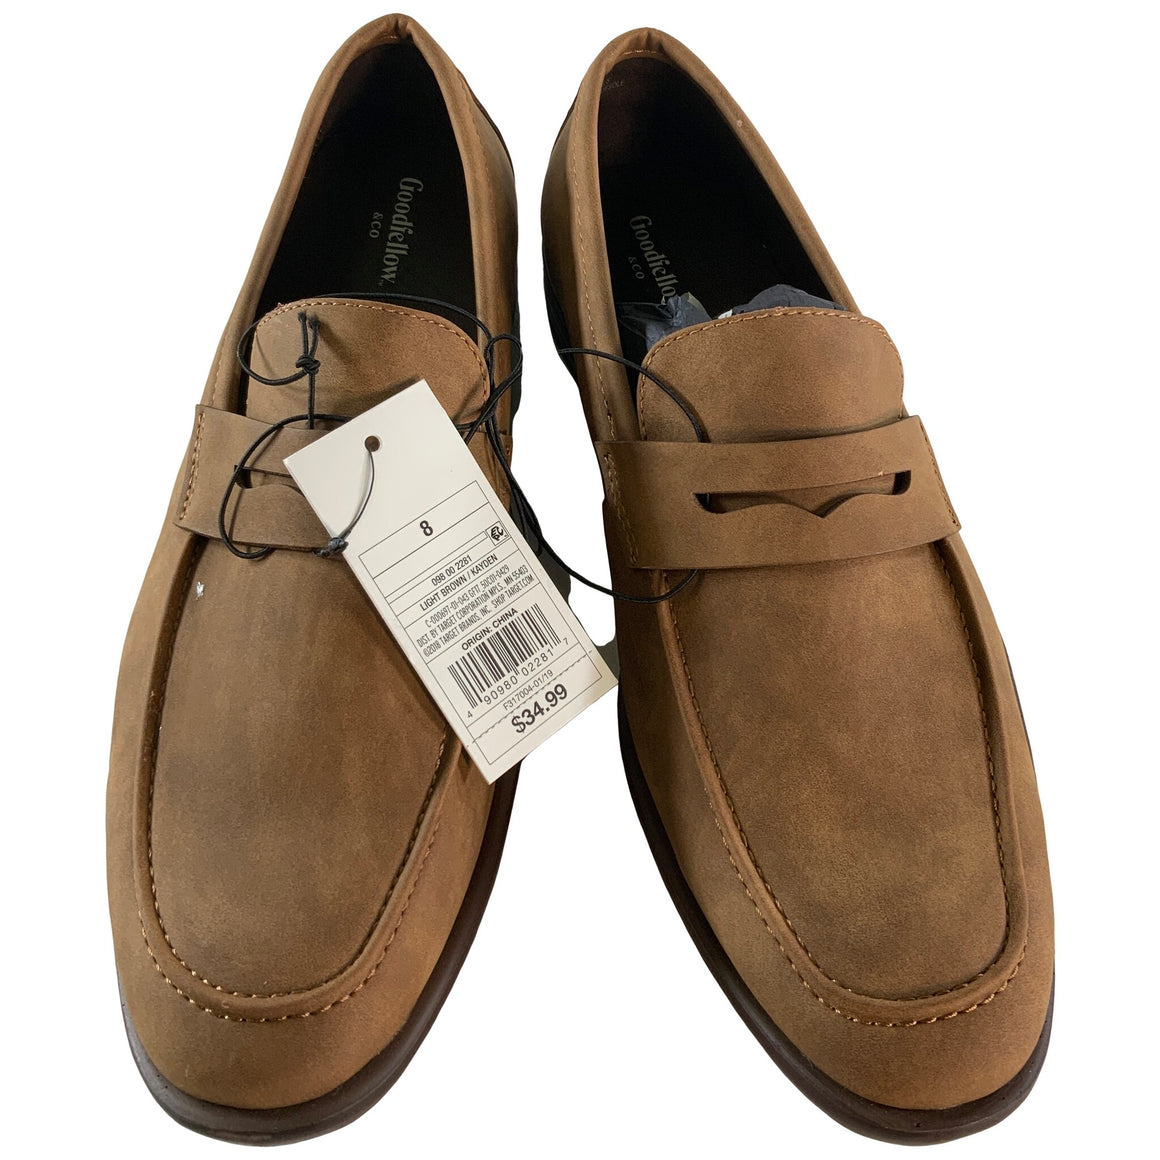 Men'S Kayden Loafers - Tan 8 - Goodfellow & Co